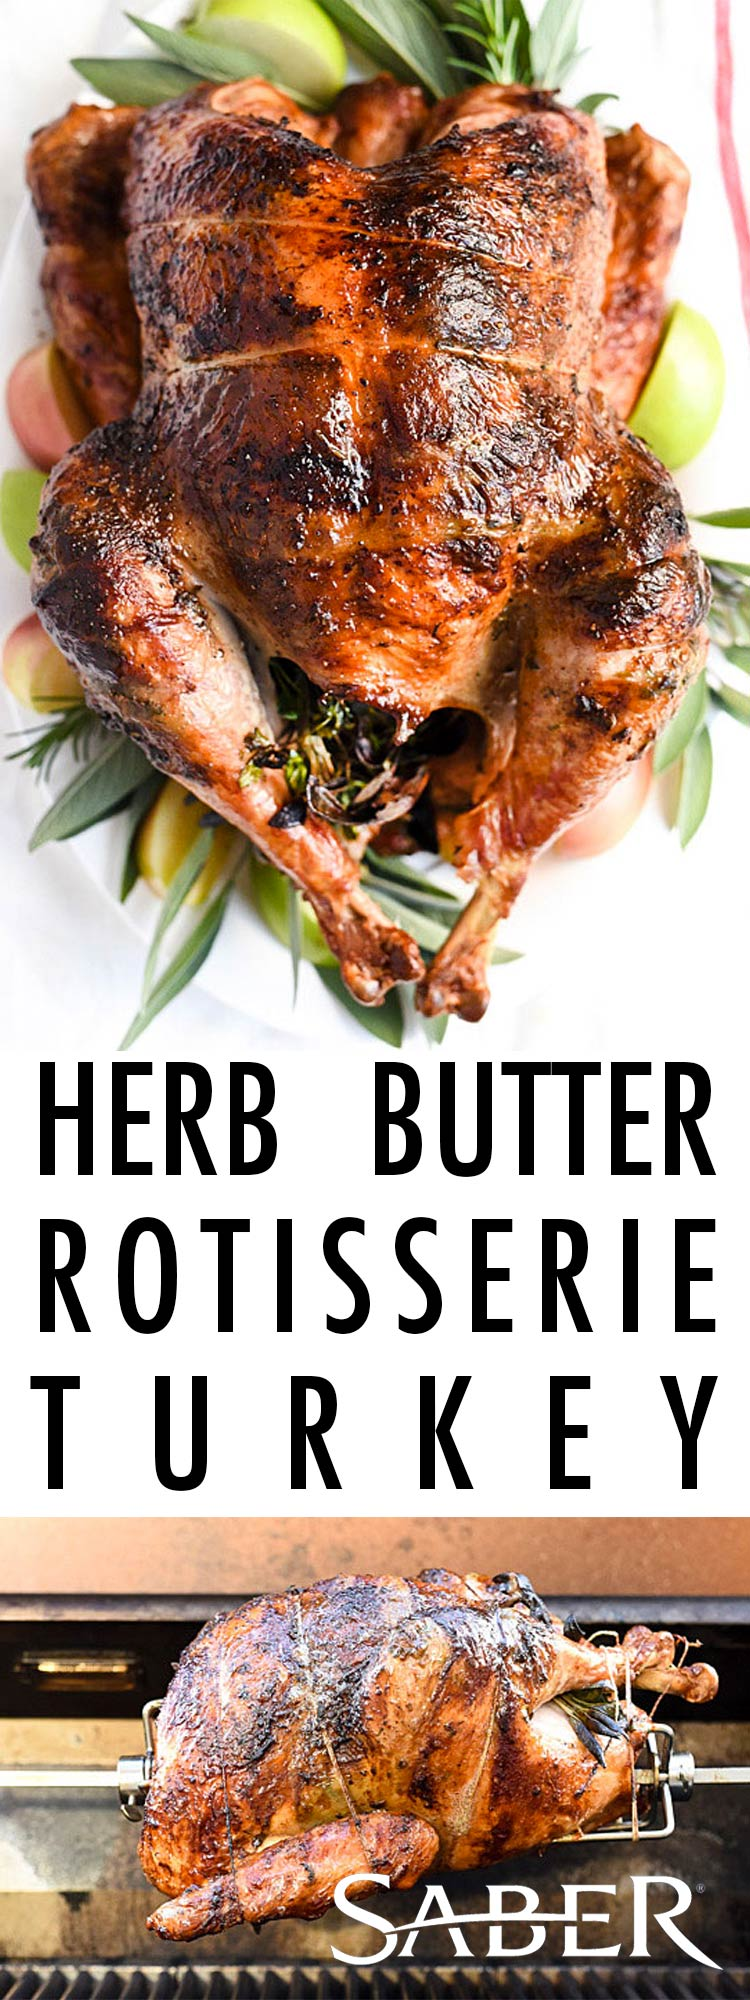 Herb Butter Rotisserie Turkey Better Barbecue Blog